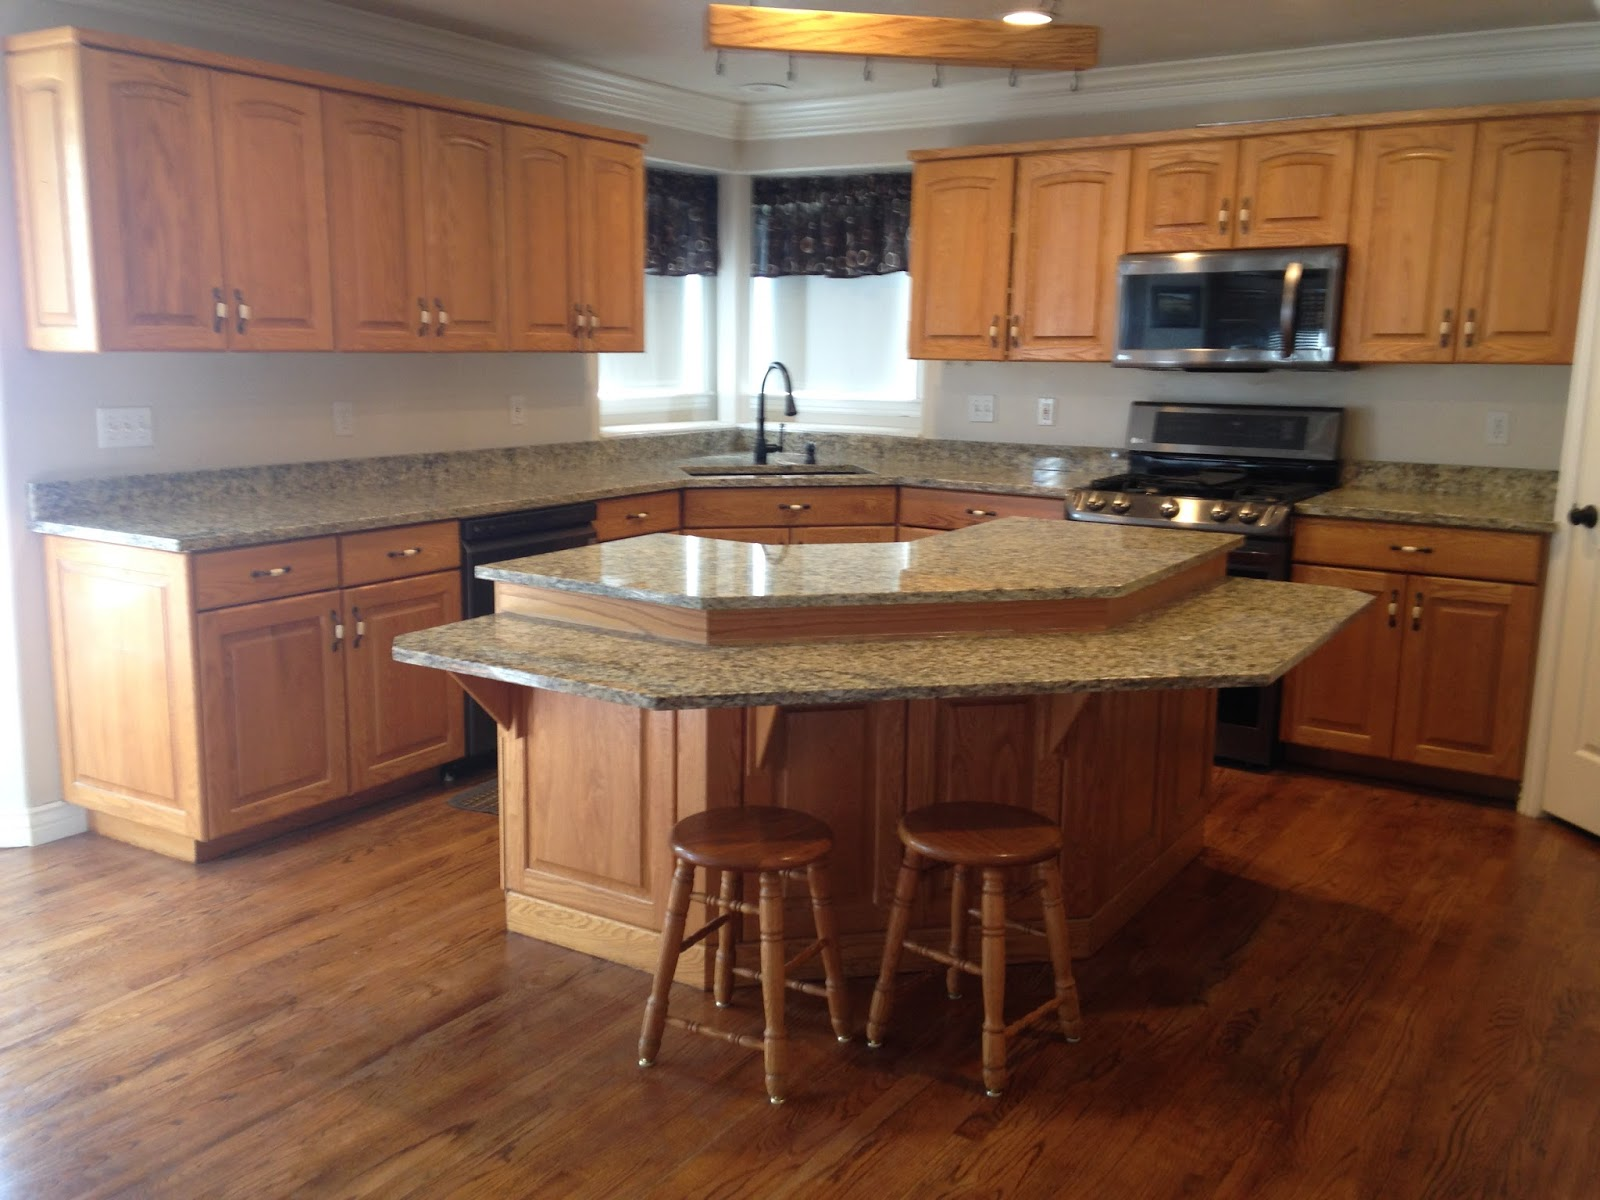 This is a wonderful way to change up the kitchen and refresh the look, especially when you have wonderful solid wood cabinets.